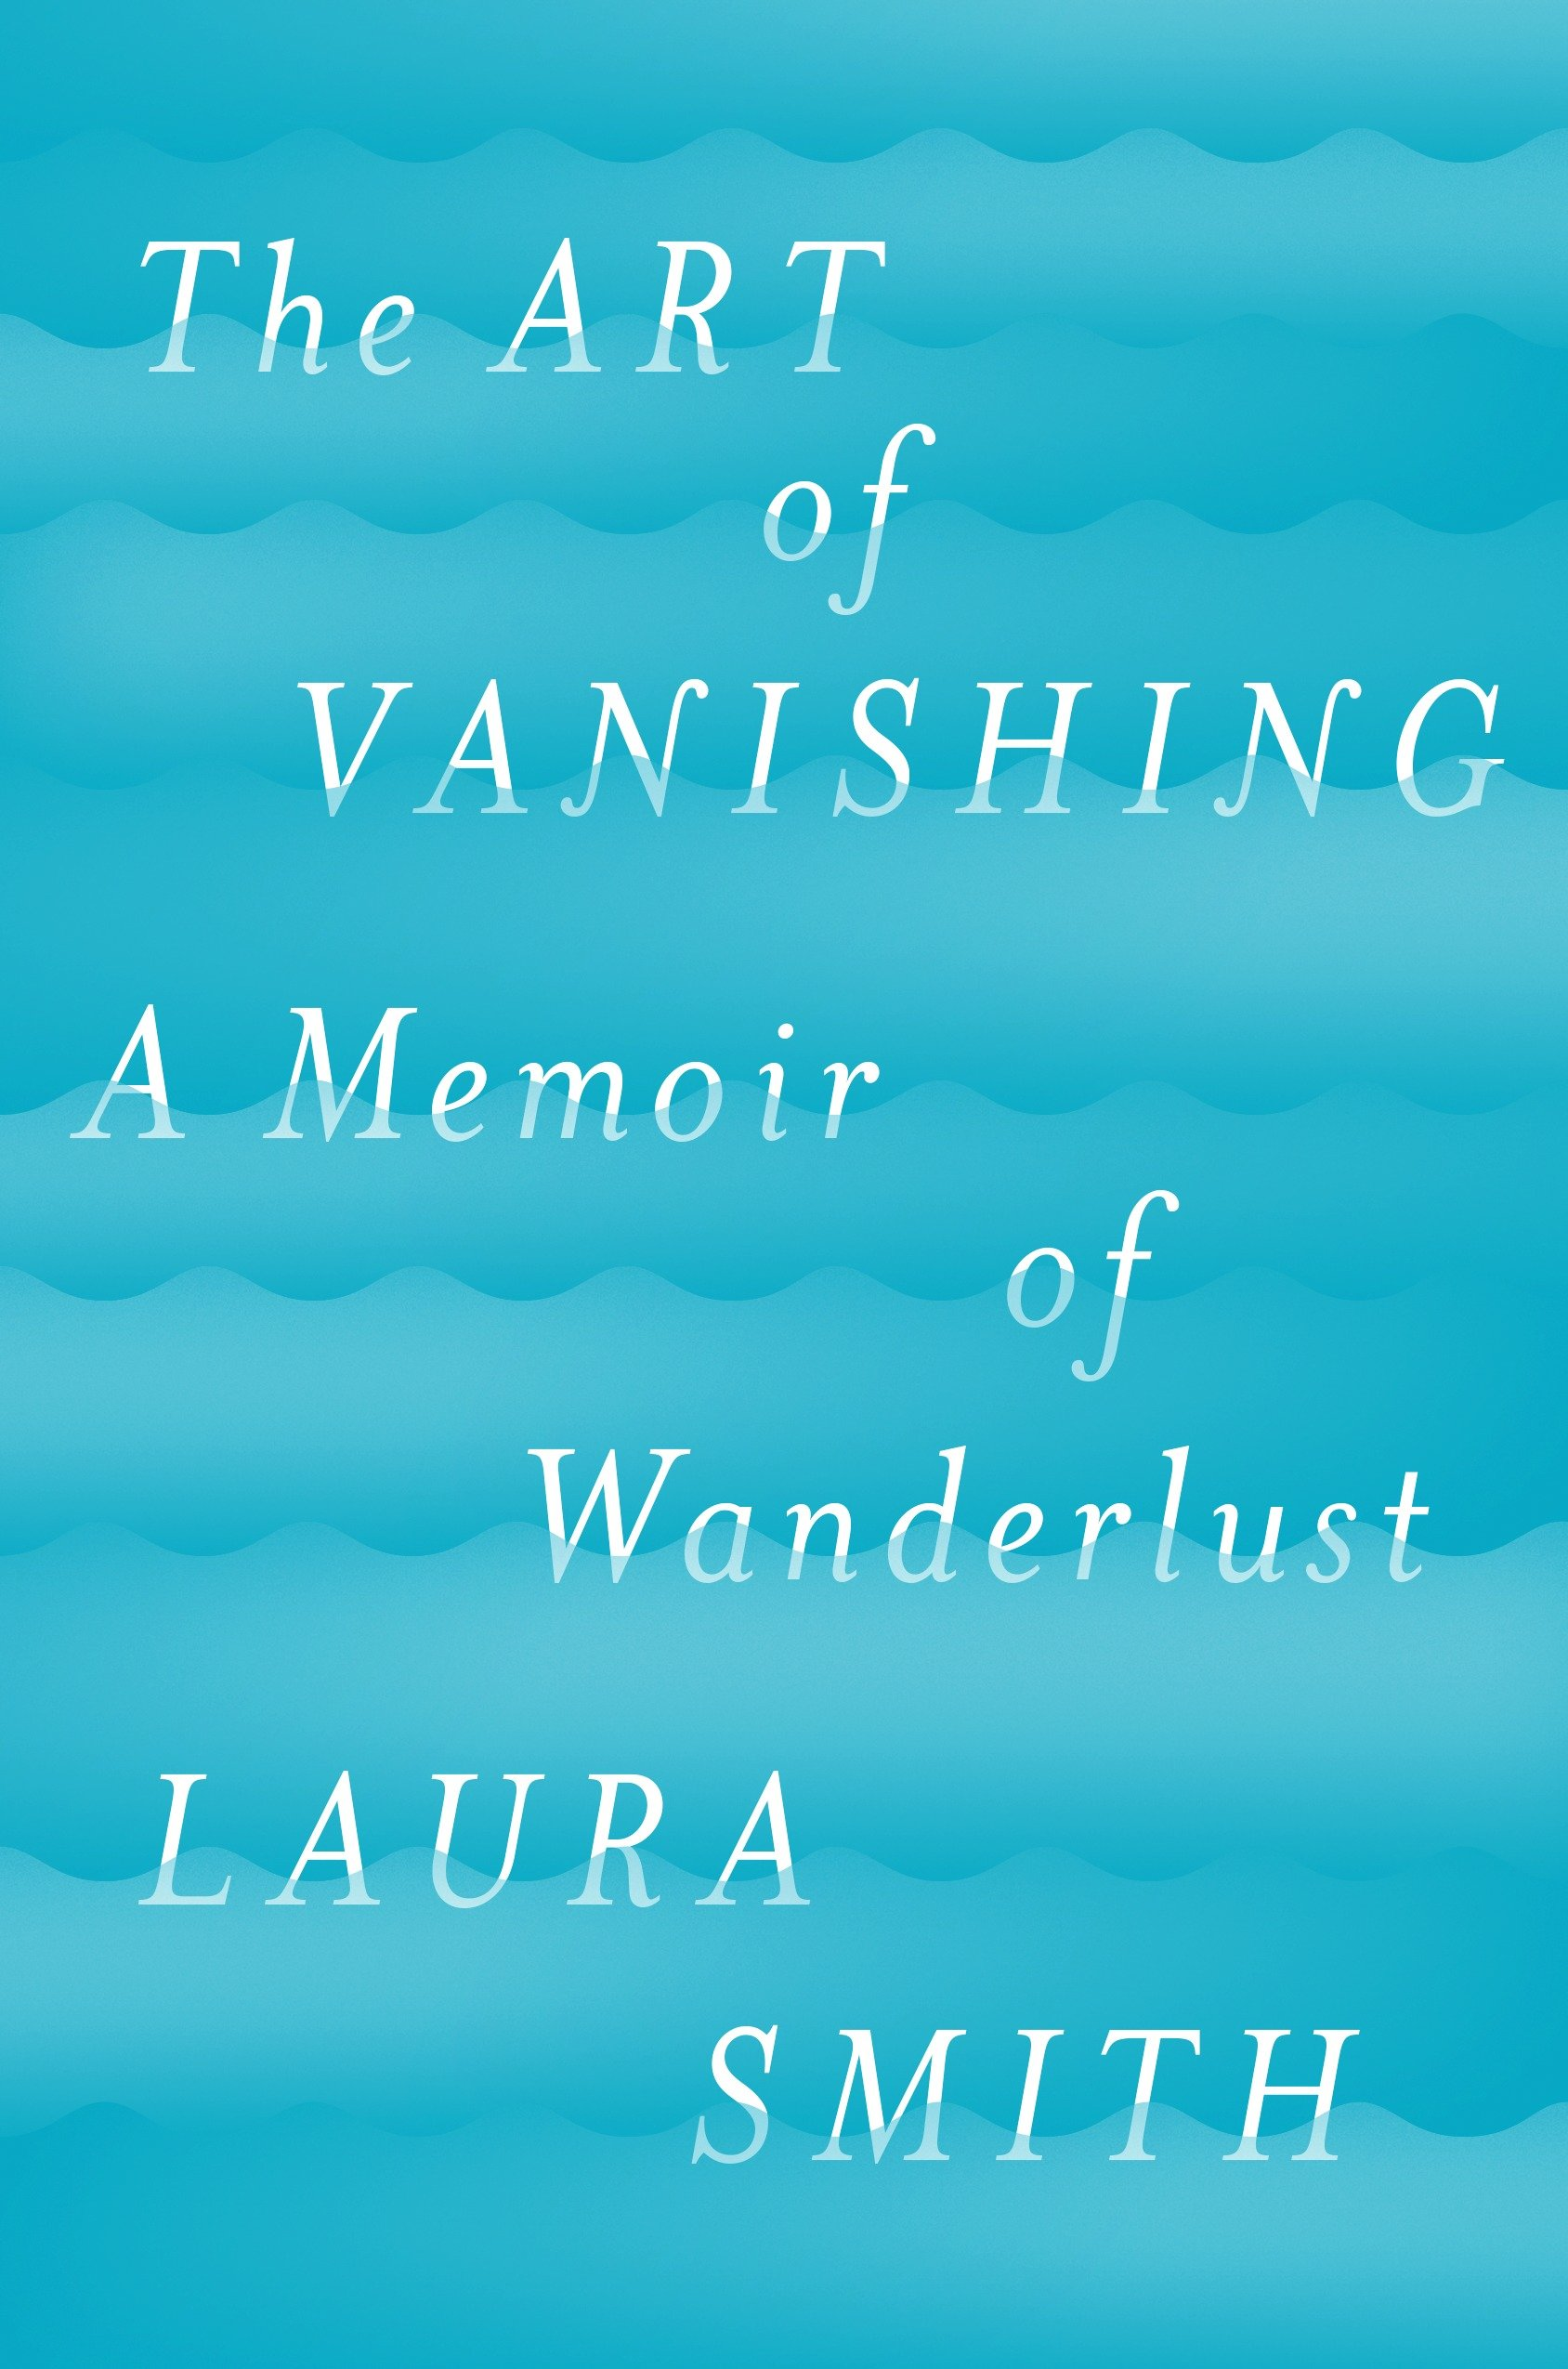 The Art of Vanishing A Memoir of Wanderlust